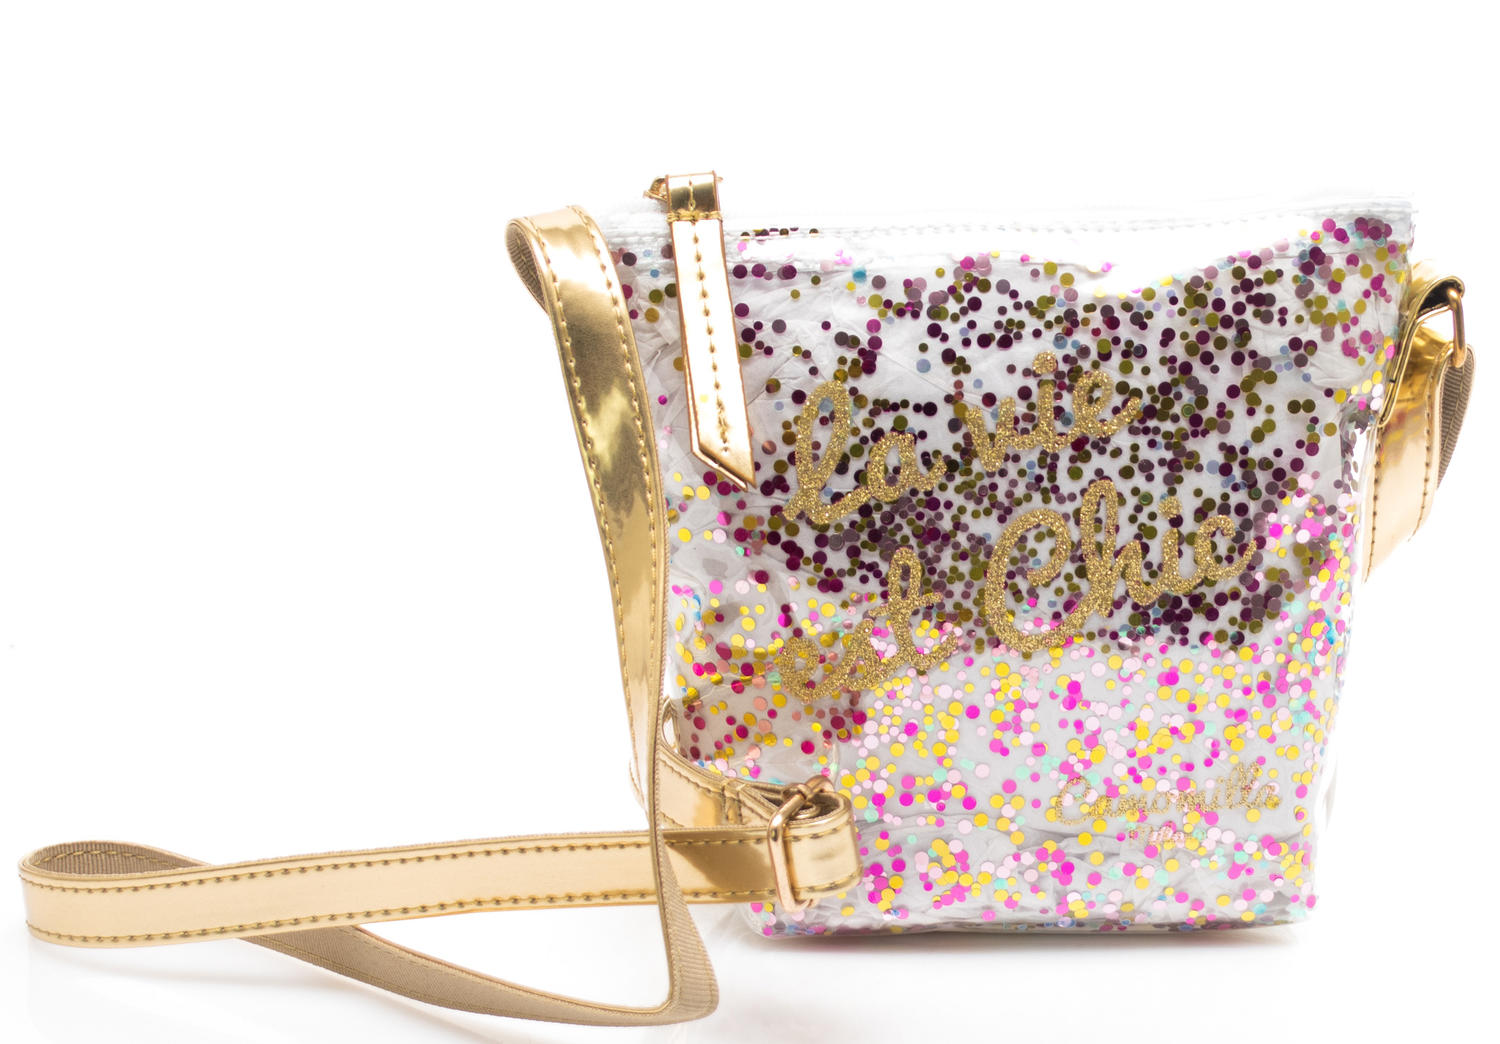 Kids bags and accessories - MANZANILLA CRYSTAL Mini shoulder bag